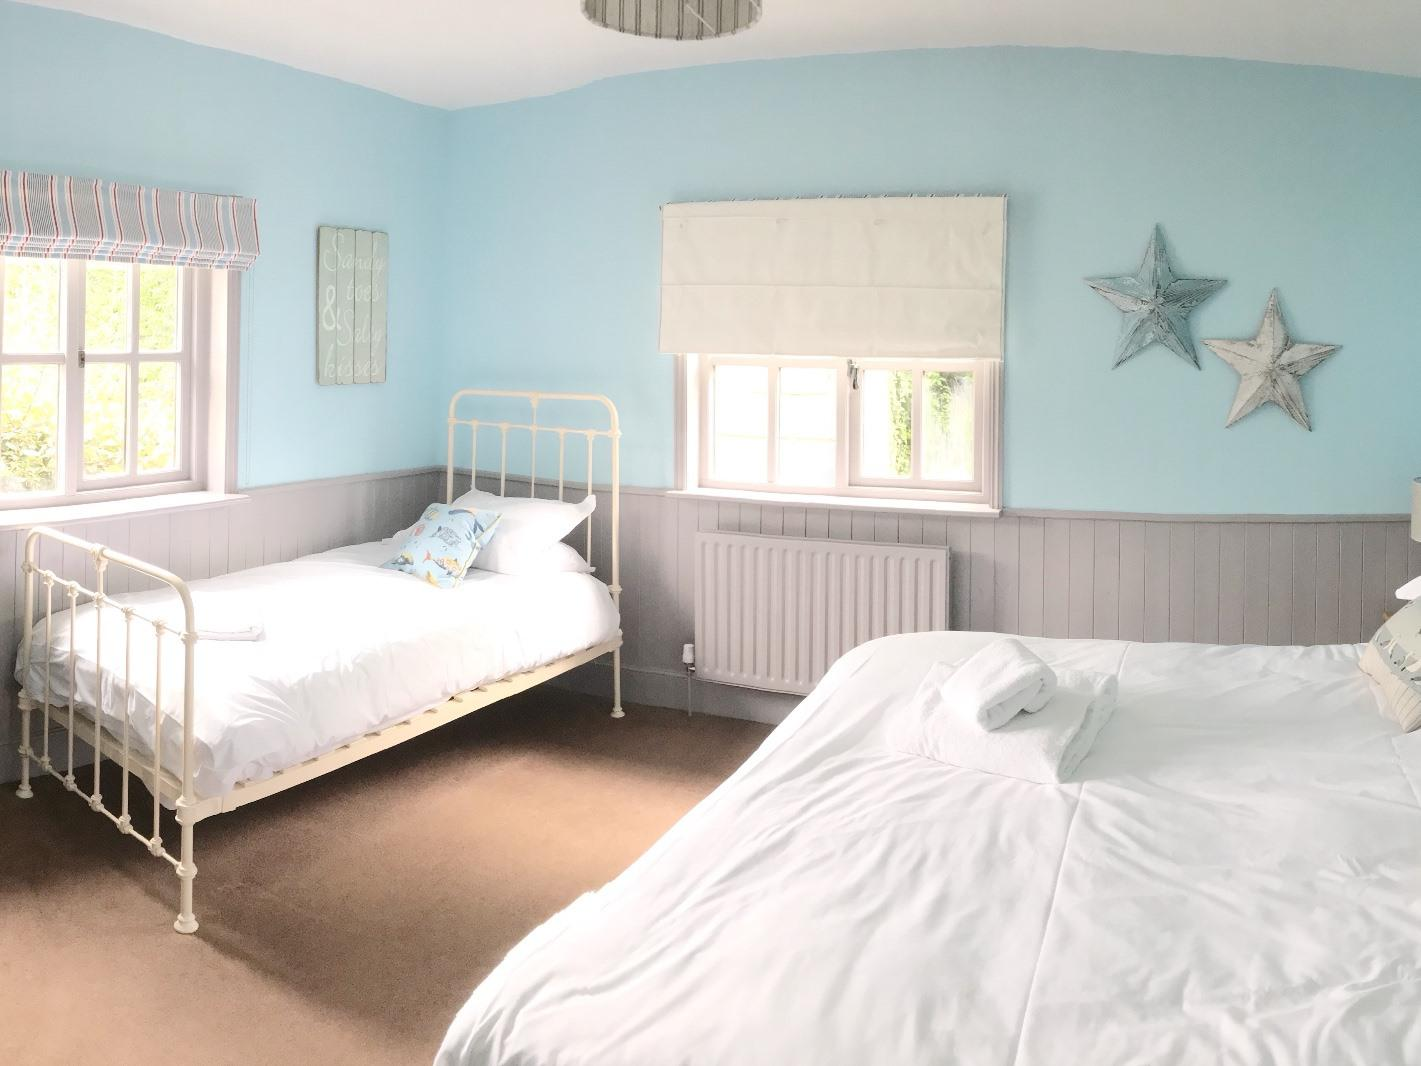 Family room-Comfort-Ensuite-Garden View-Stable Accommodation